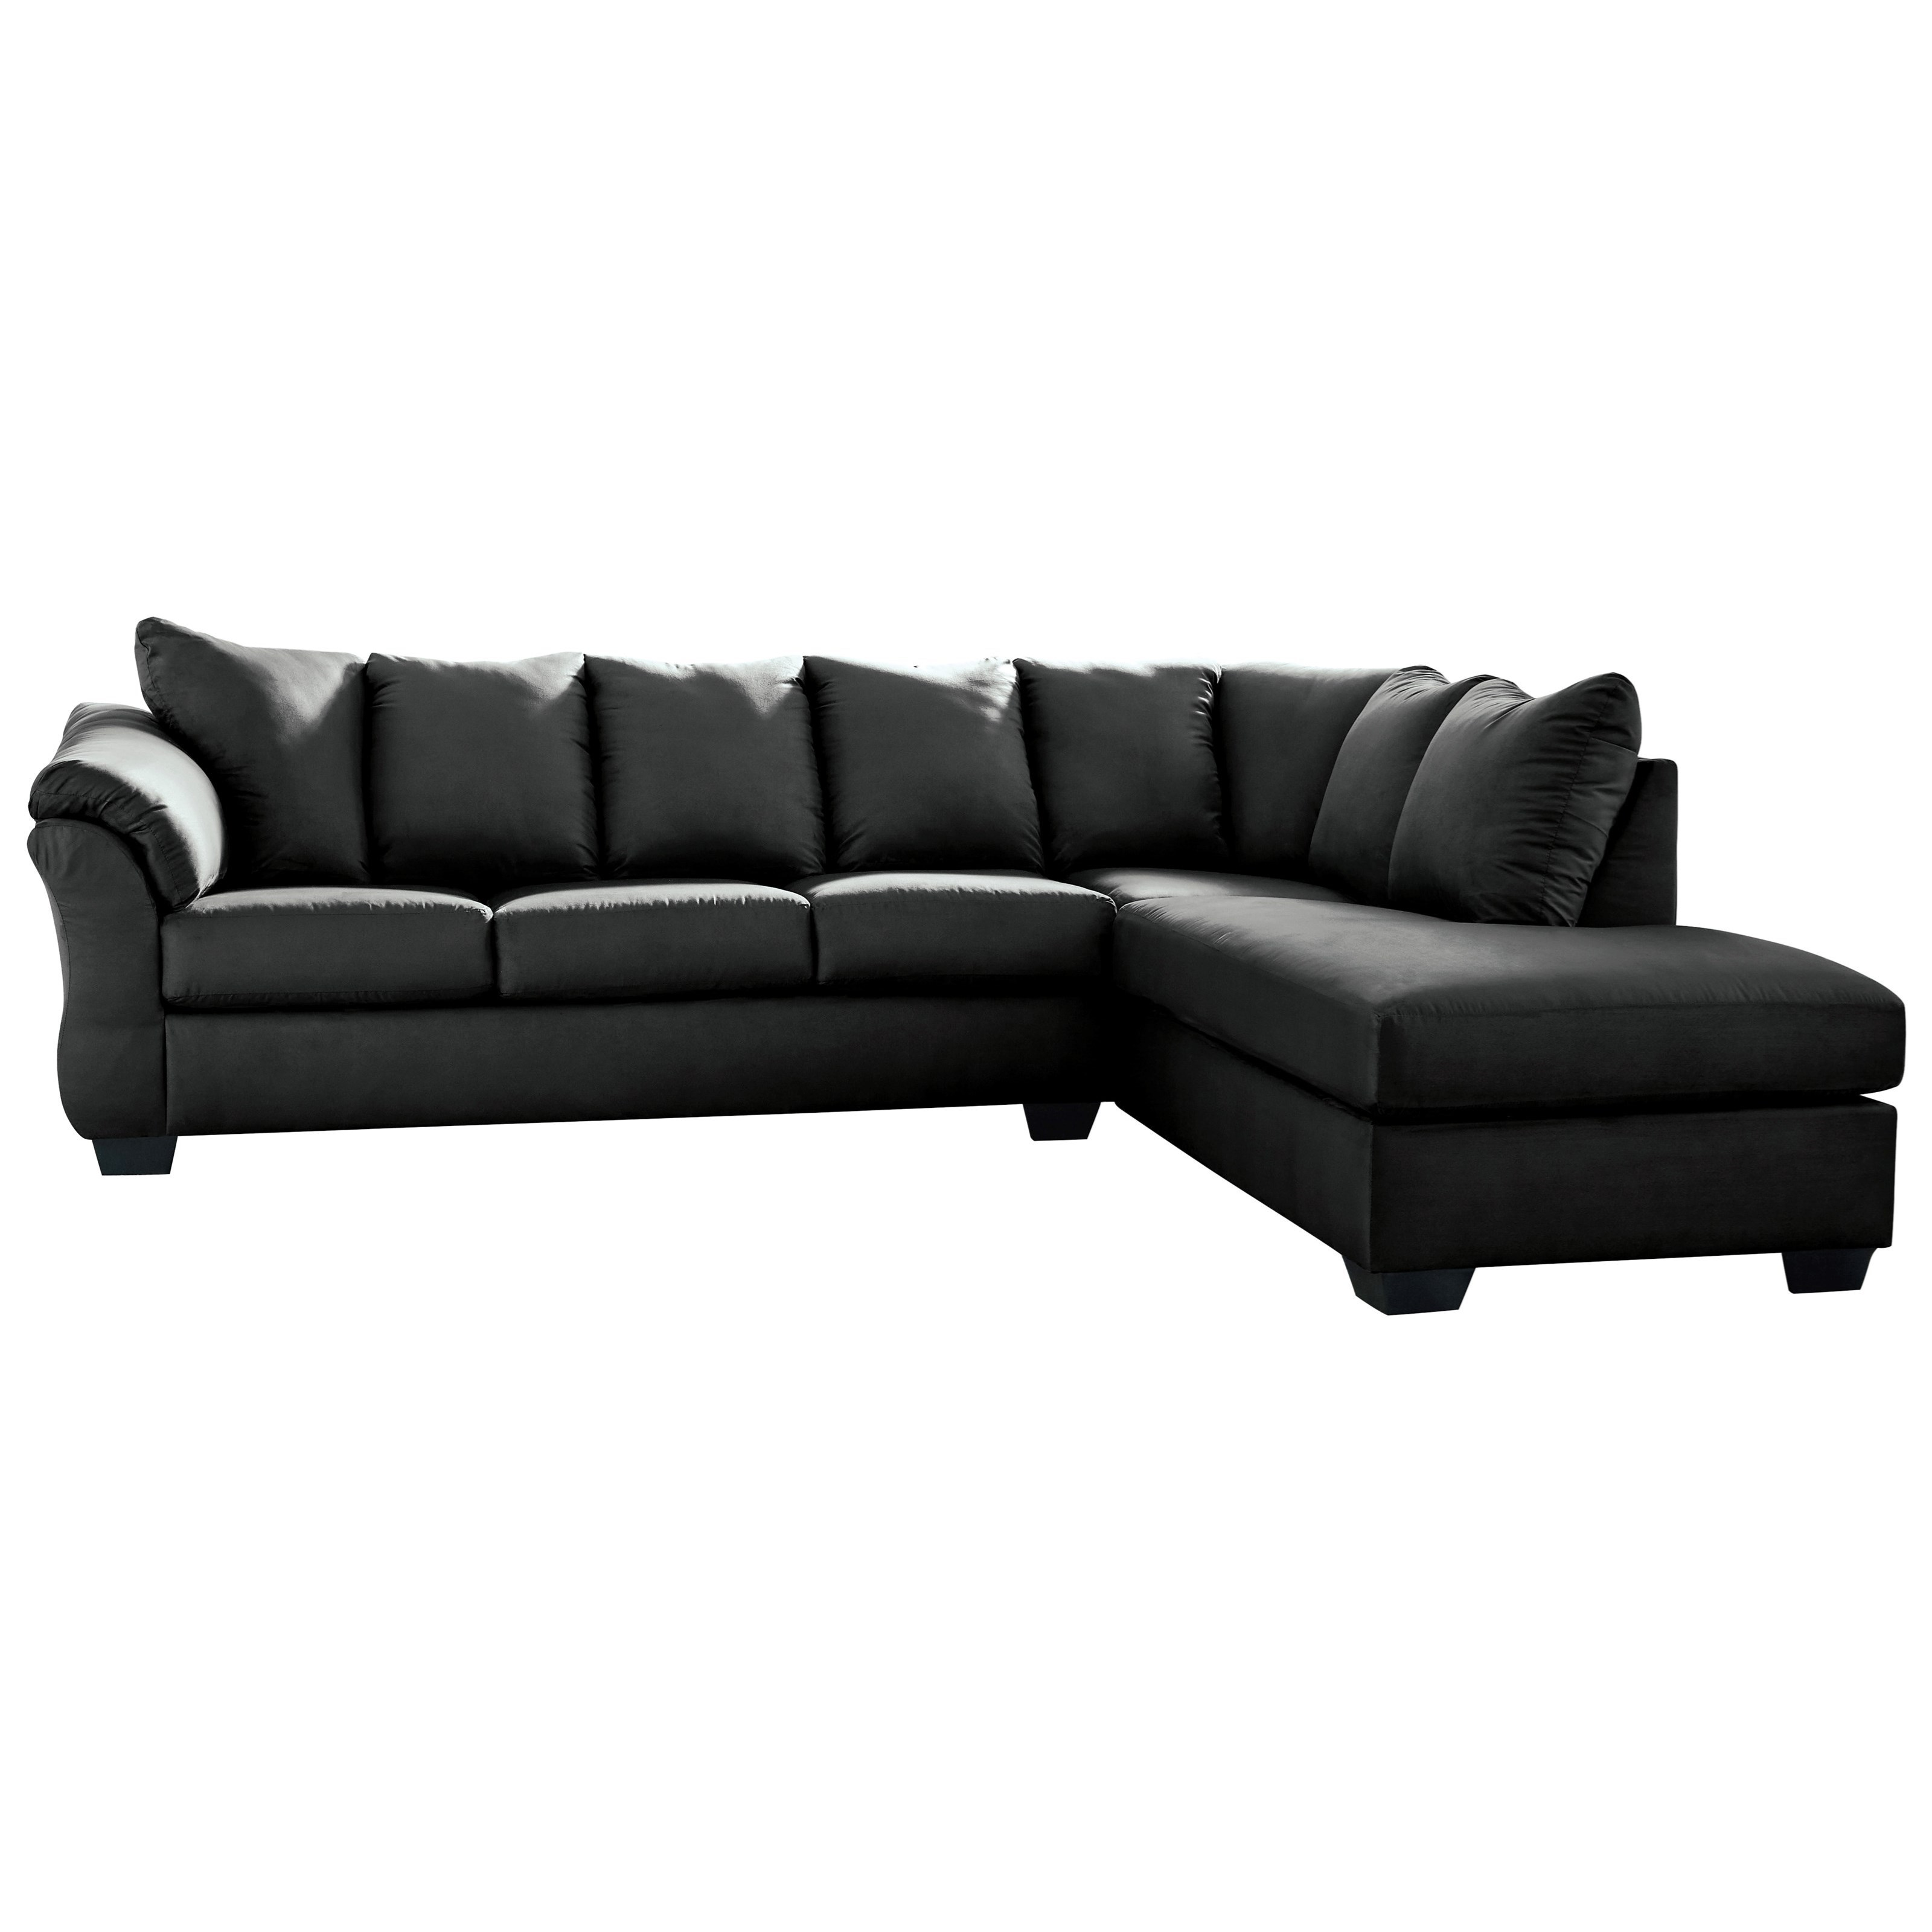 Darcy - Black 2-Piece Sectional Sofa by Signature Design by Ashley at Carolina Direct